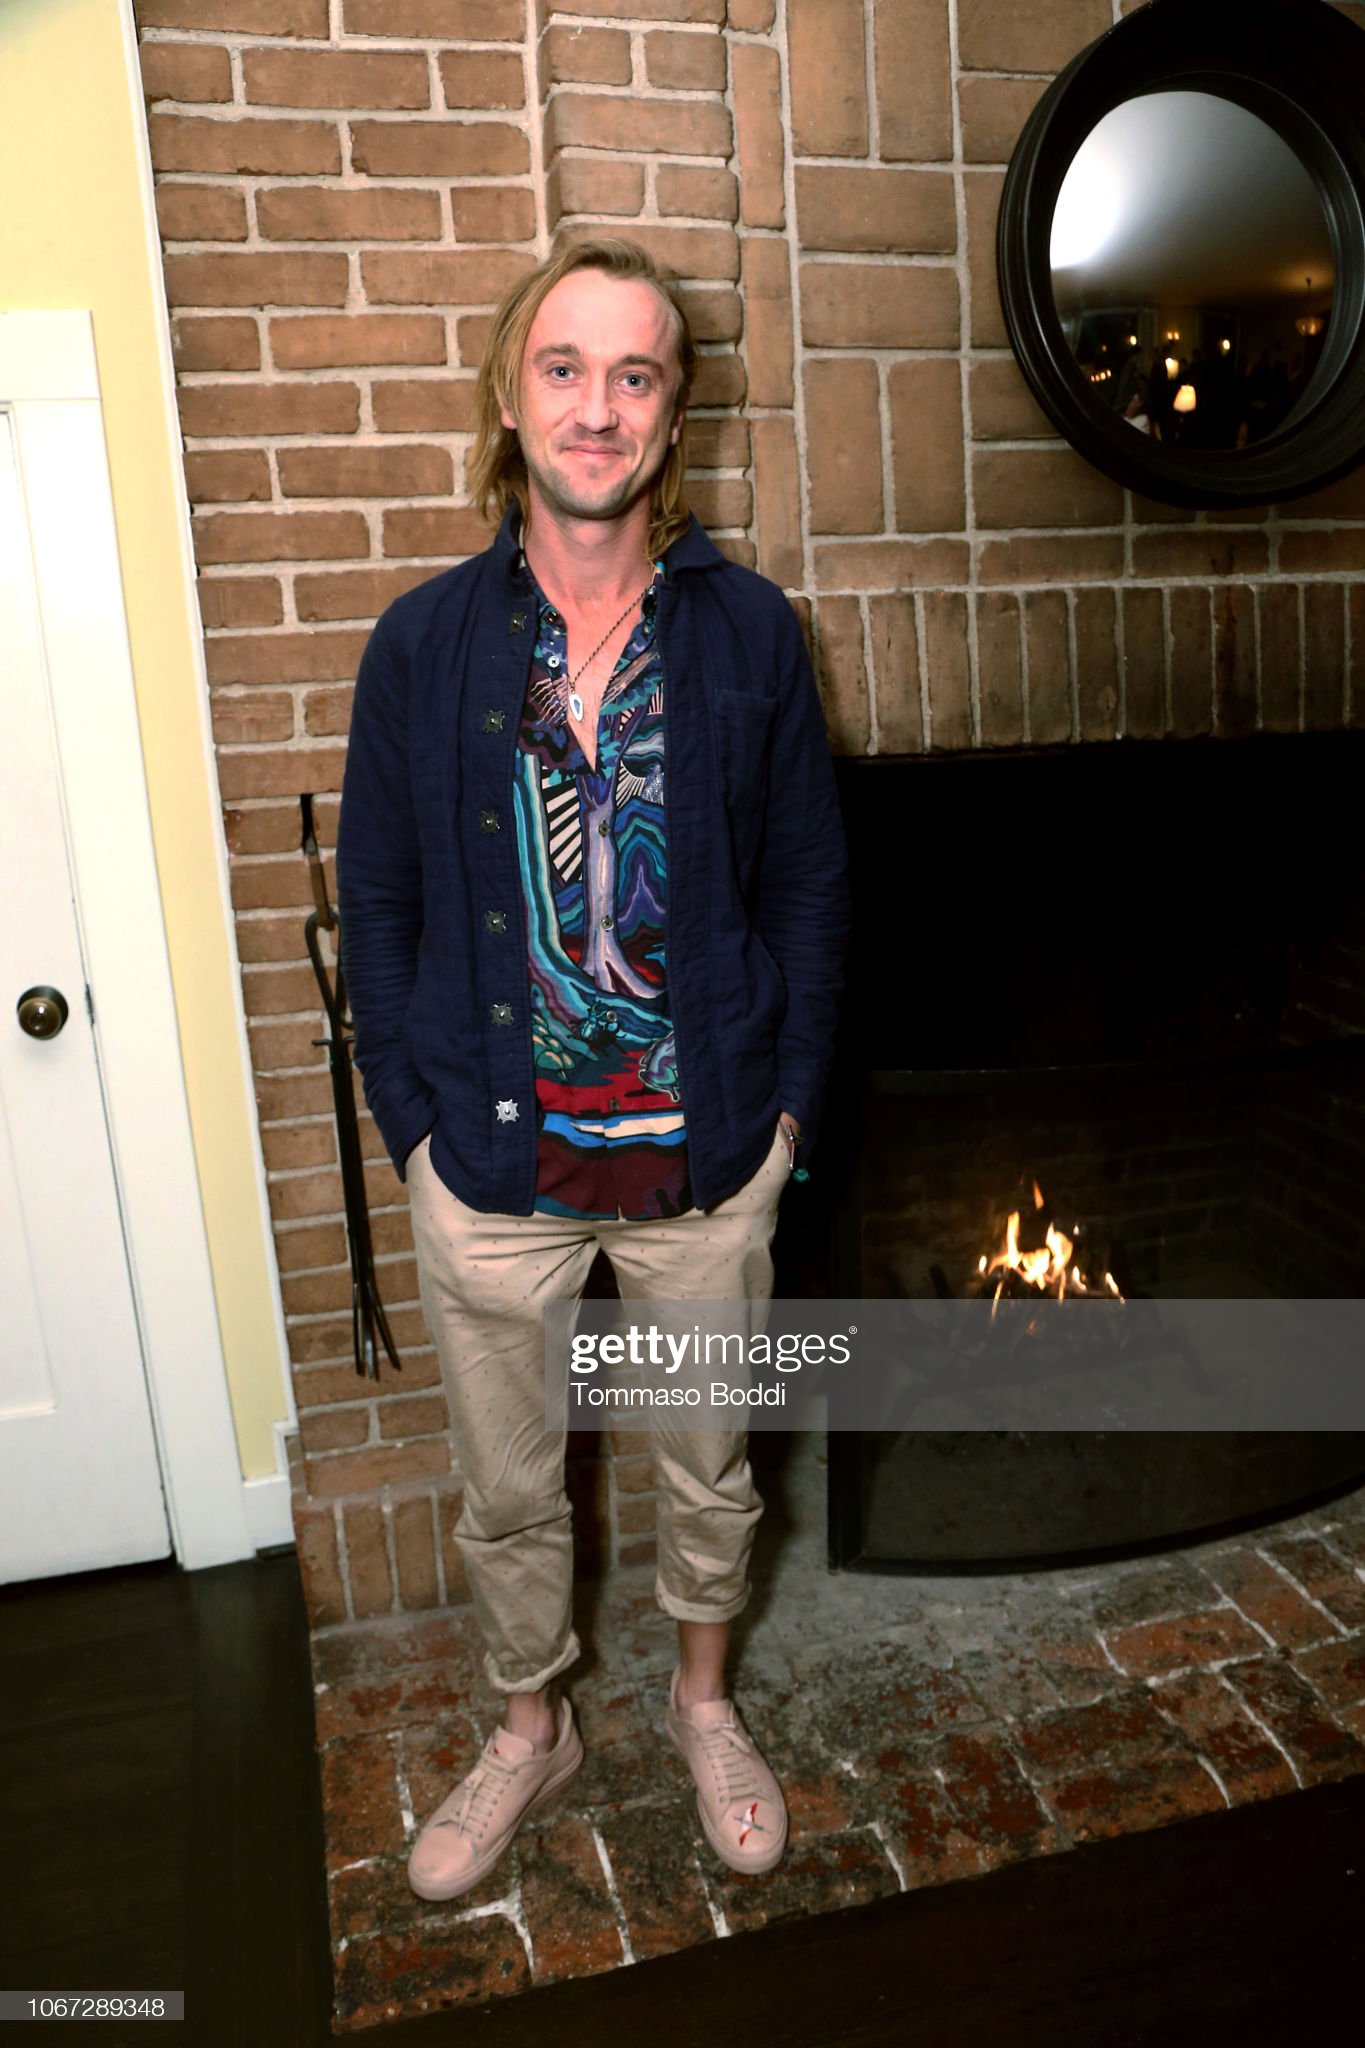 ¿Cuánto mide Tom Felton? - Altura - Real height Tom-felton-attends-a-celebration-of-youtube-originals-at-chateau-on-picture-id1067289348?s=2048x2048